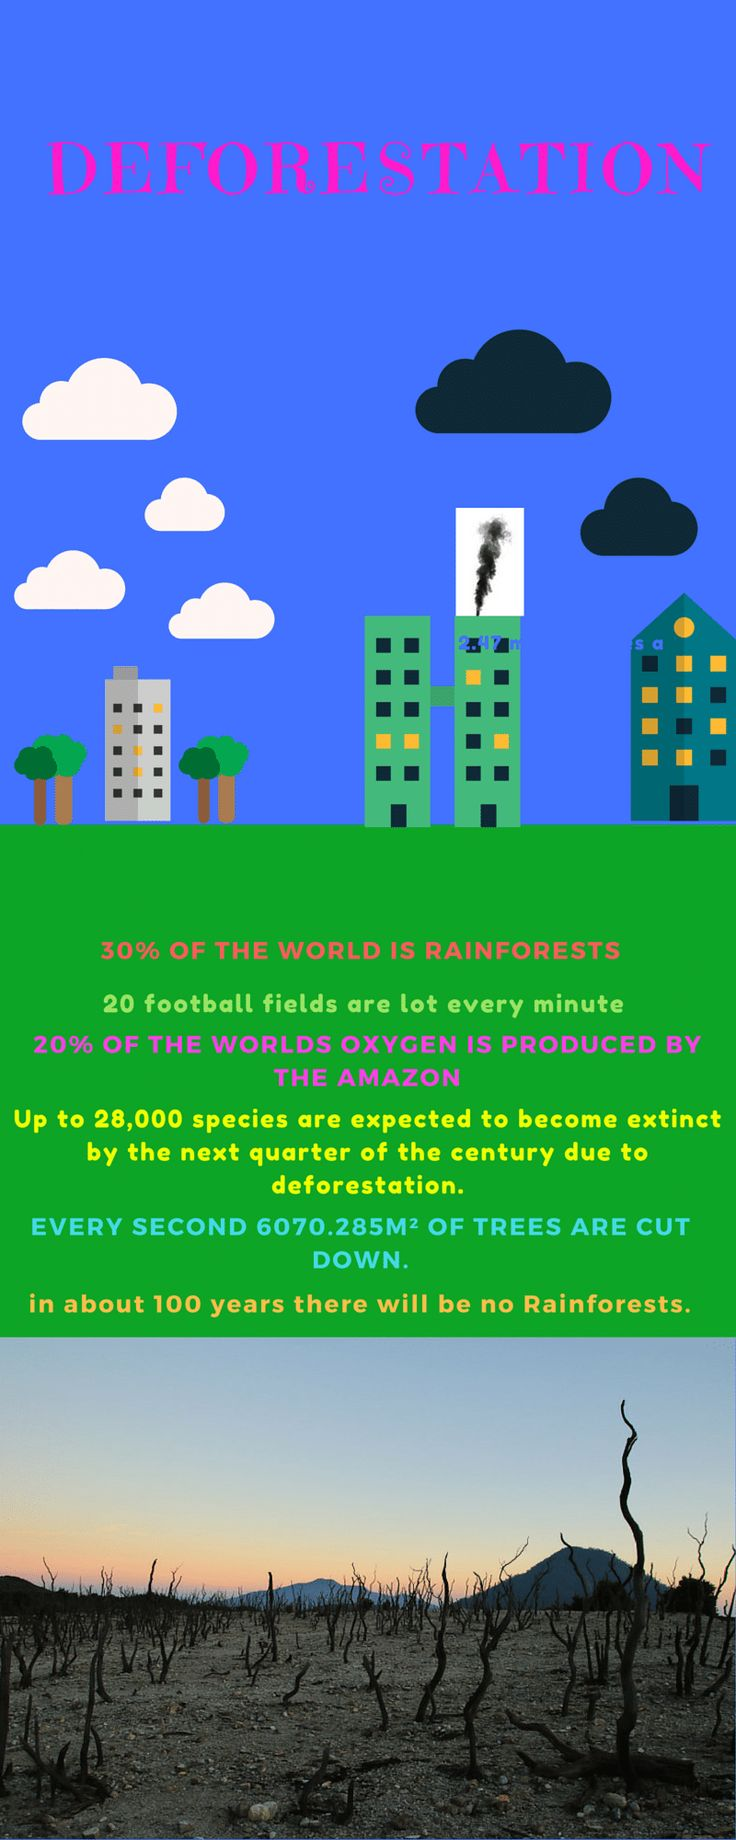 deforestation 2.47 million trees a day 30% of the world is rainfore...